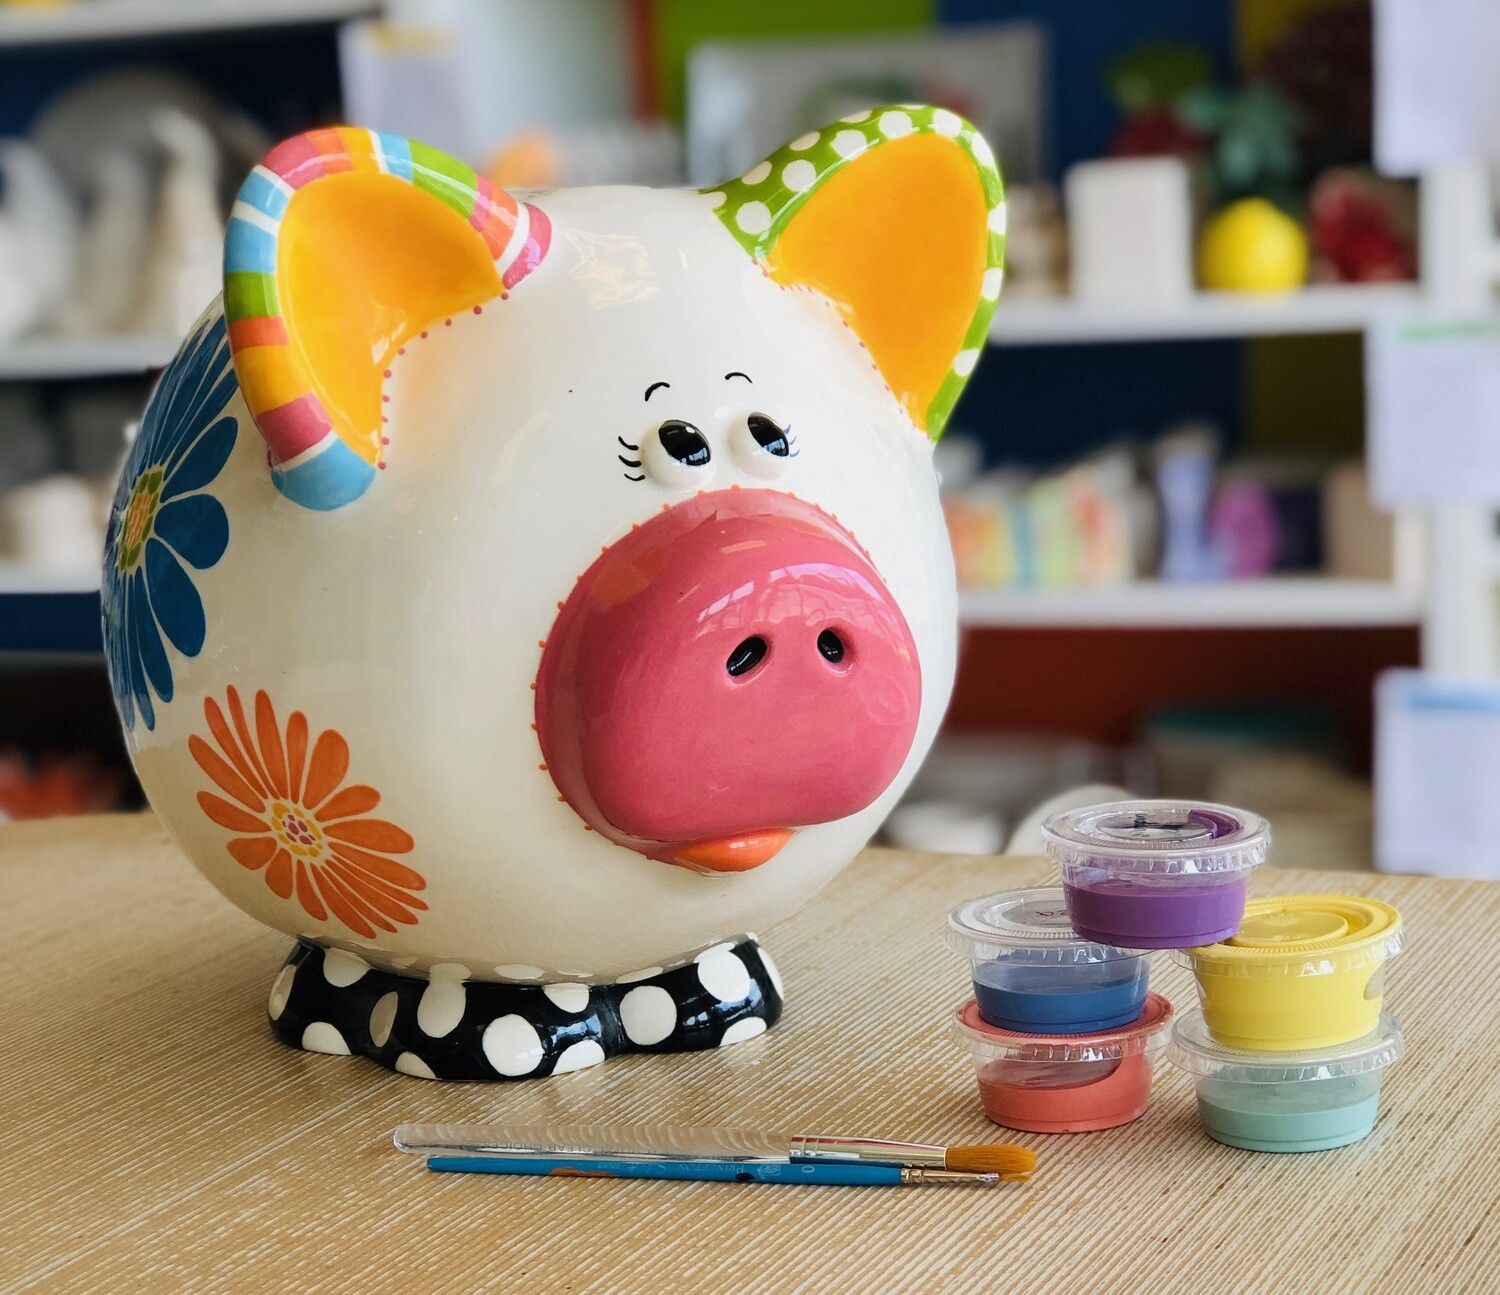 Take Home Piggus Maximus Giant Piggy Bank with Glazes - Pick up Curbside